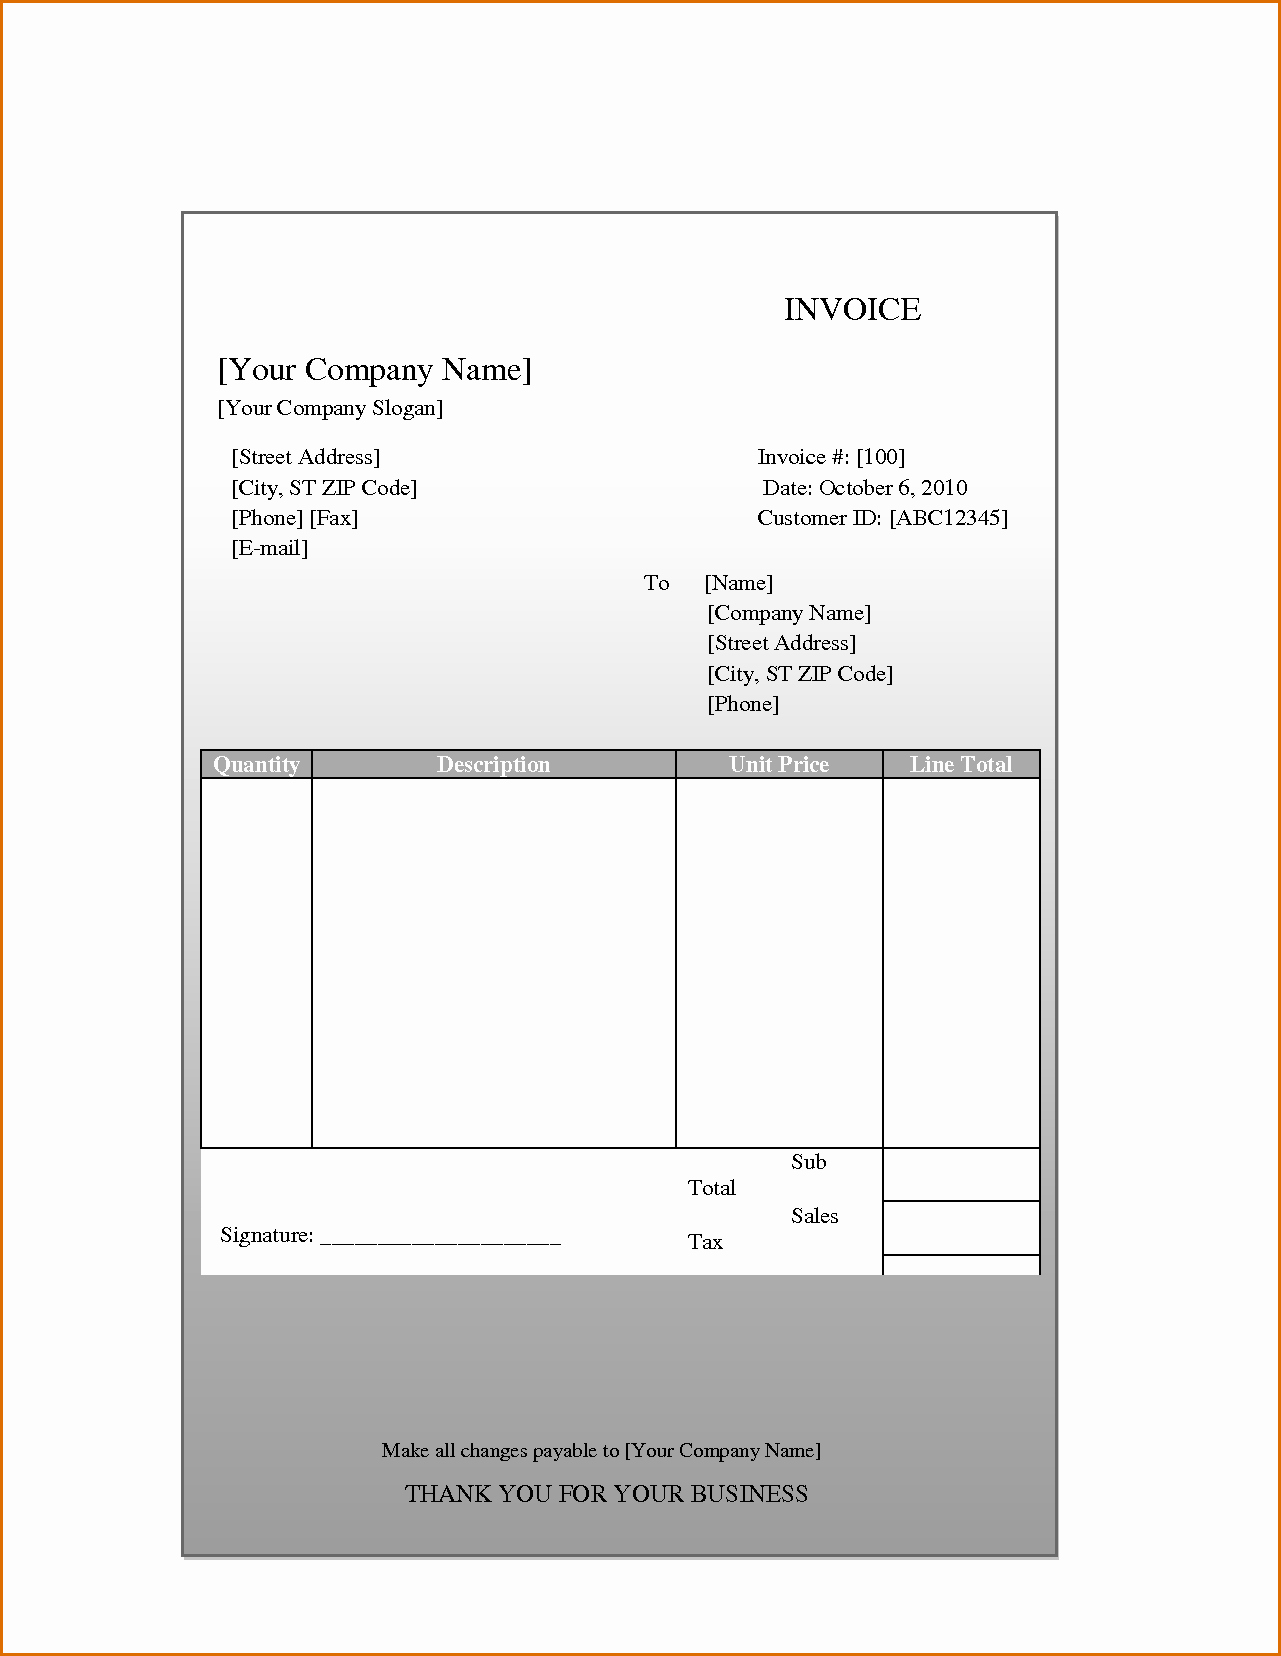 Blank Invoice Template Pdf Lovely 8 Blank Invoice Template Pdf